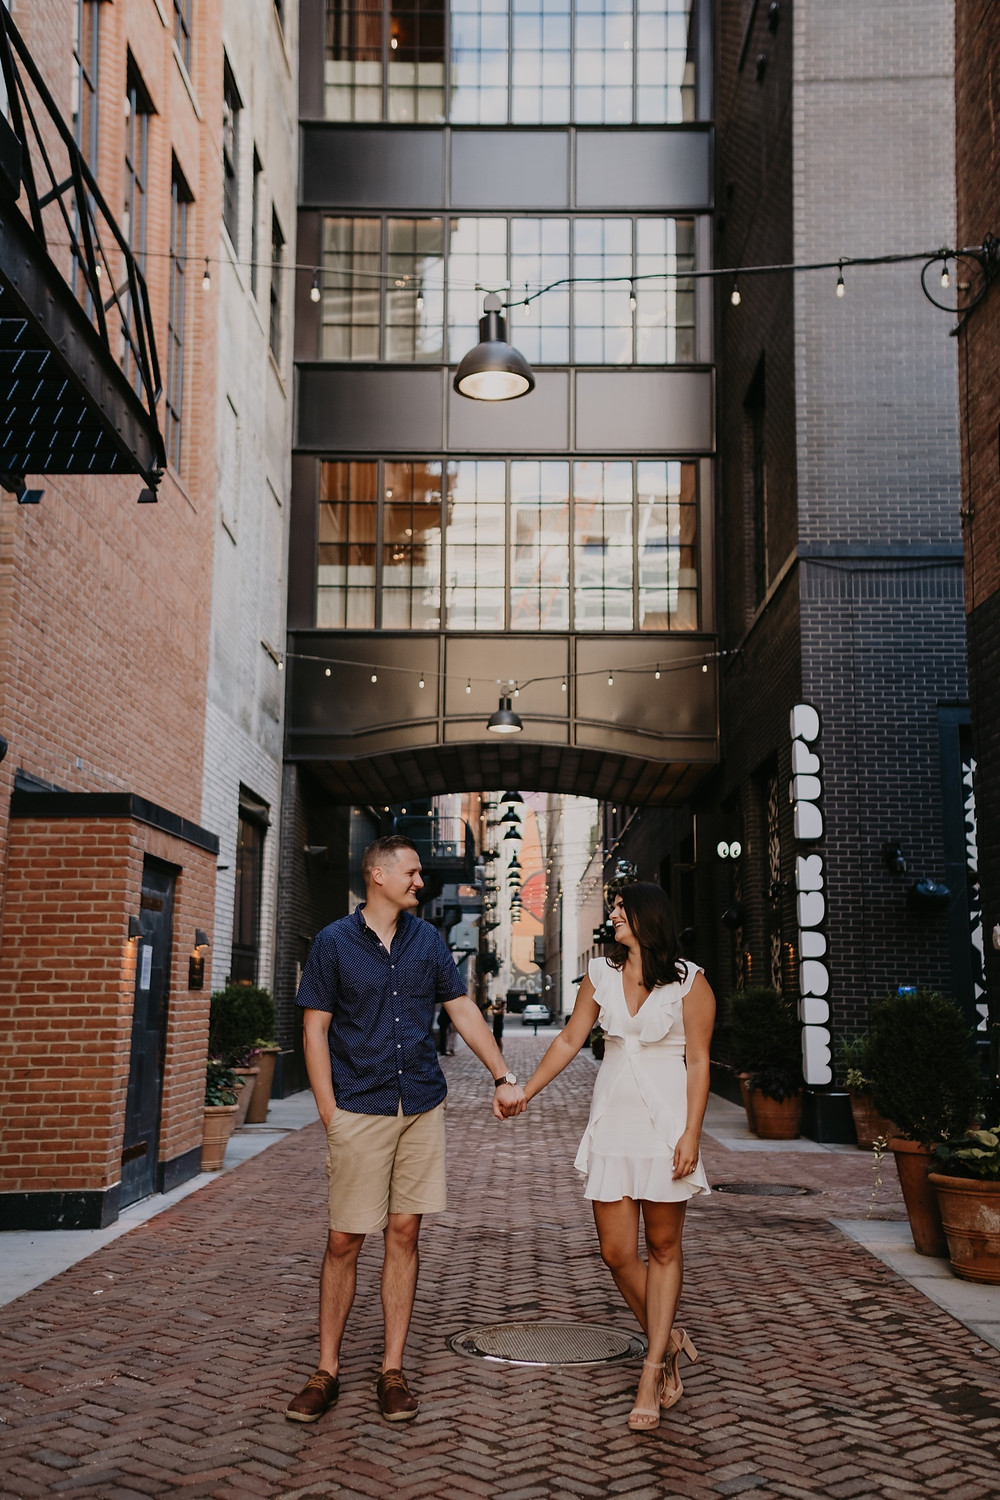 The Shinola Hotel Parkers Alley in Detroit engagement session. Photography by Nicole Leanne Photography